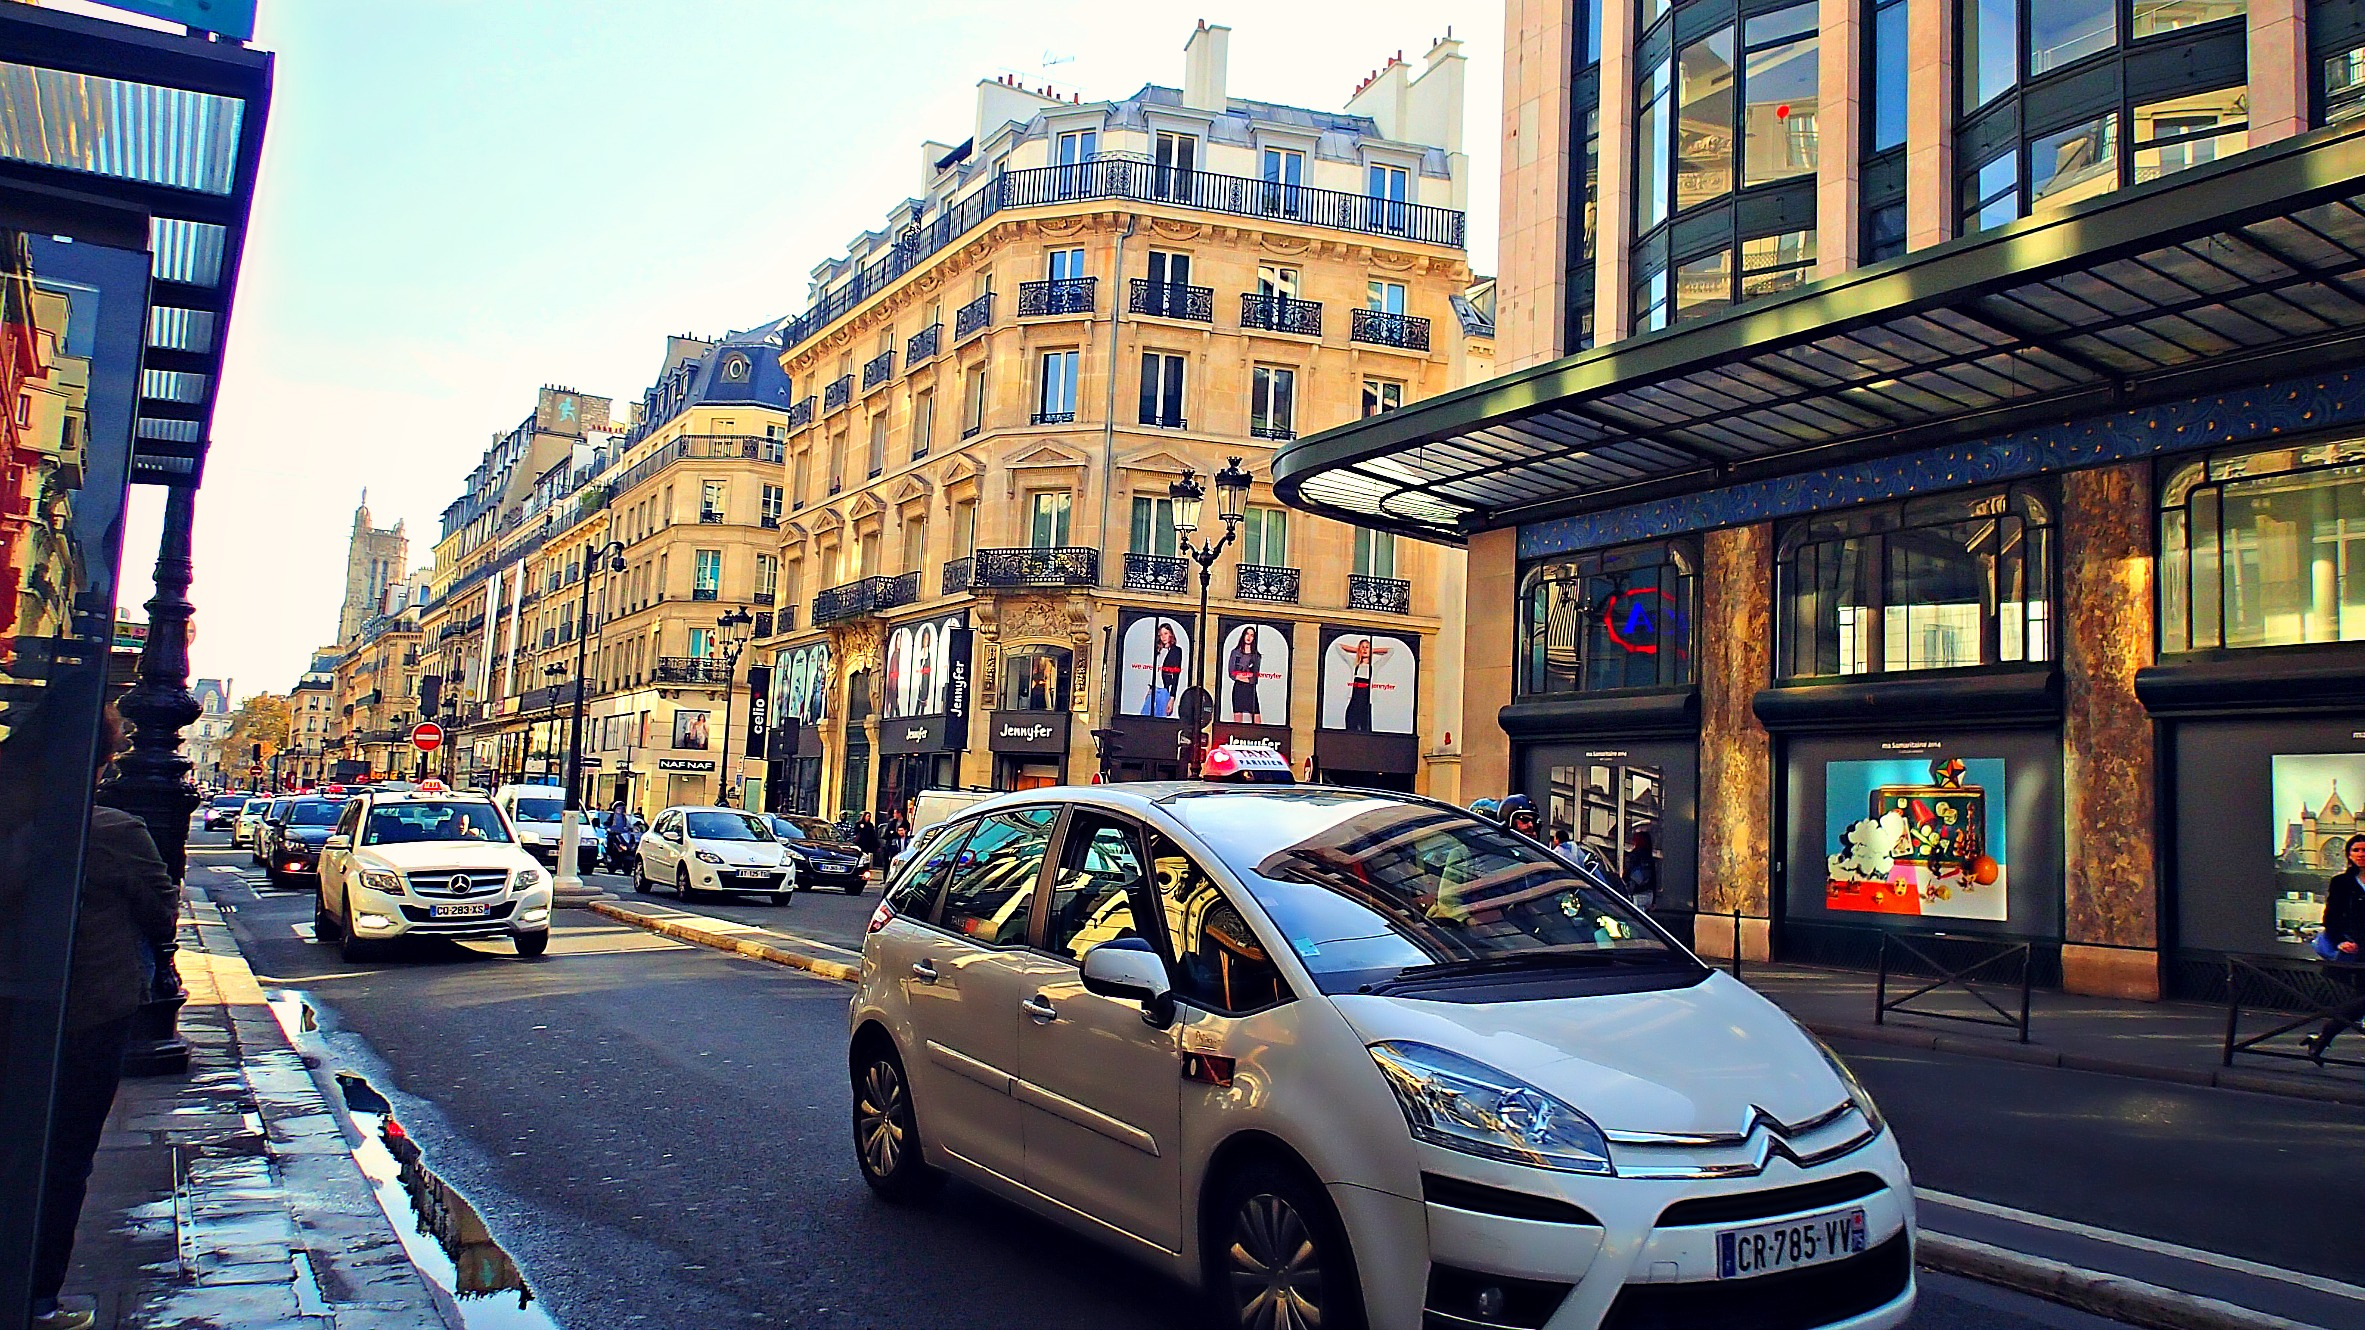 Celio Chatelet A Day In Paris Part One Voyages Et Vagabondages